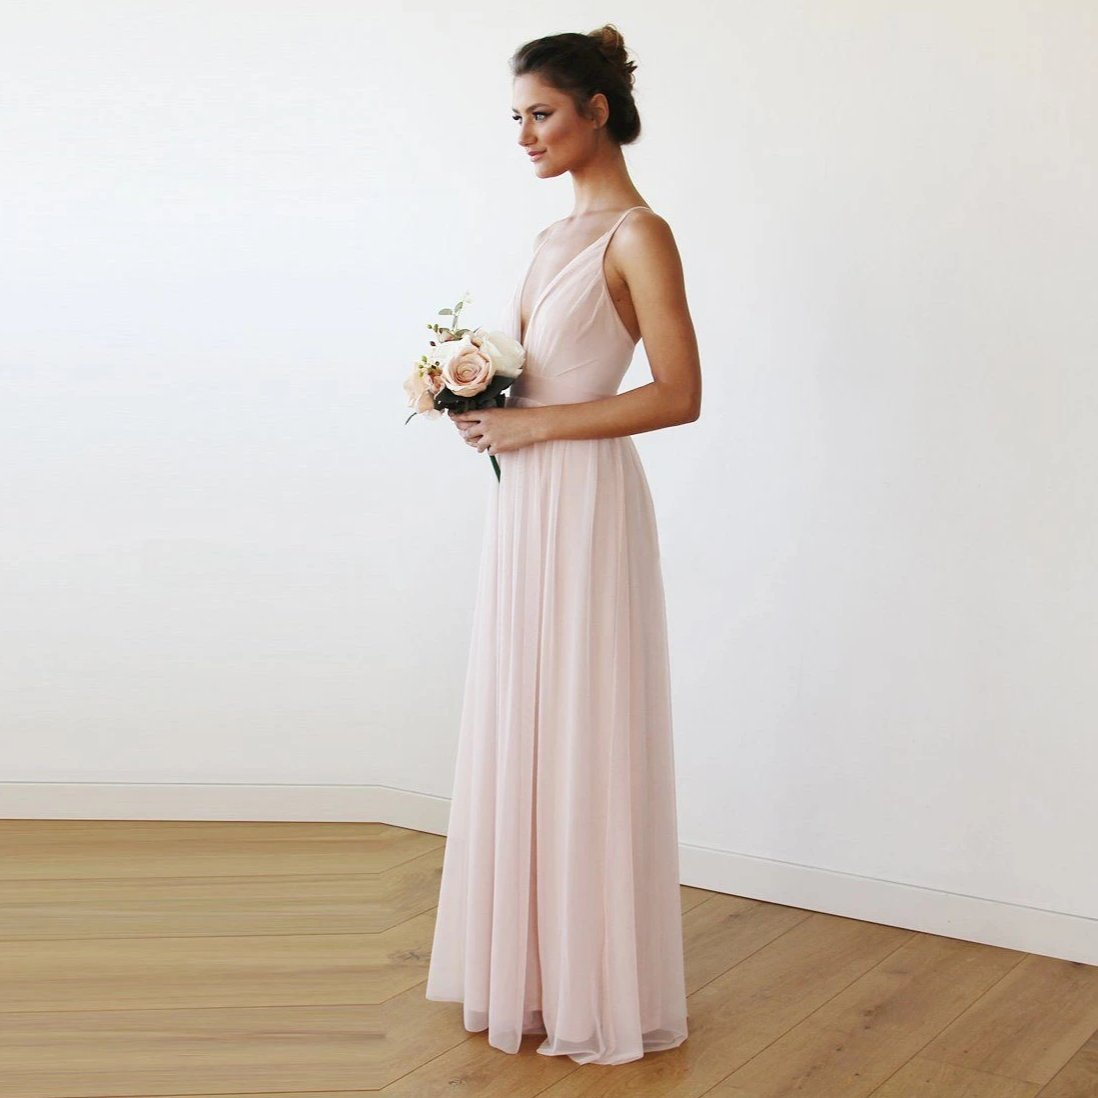 Chiffon Maxi wrap with thin straps - Light pink maxi dress with adjustable straps 1170 - Blushfashion